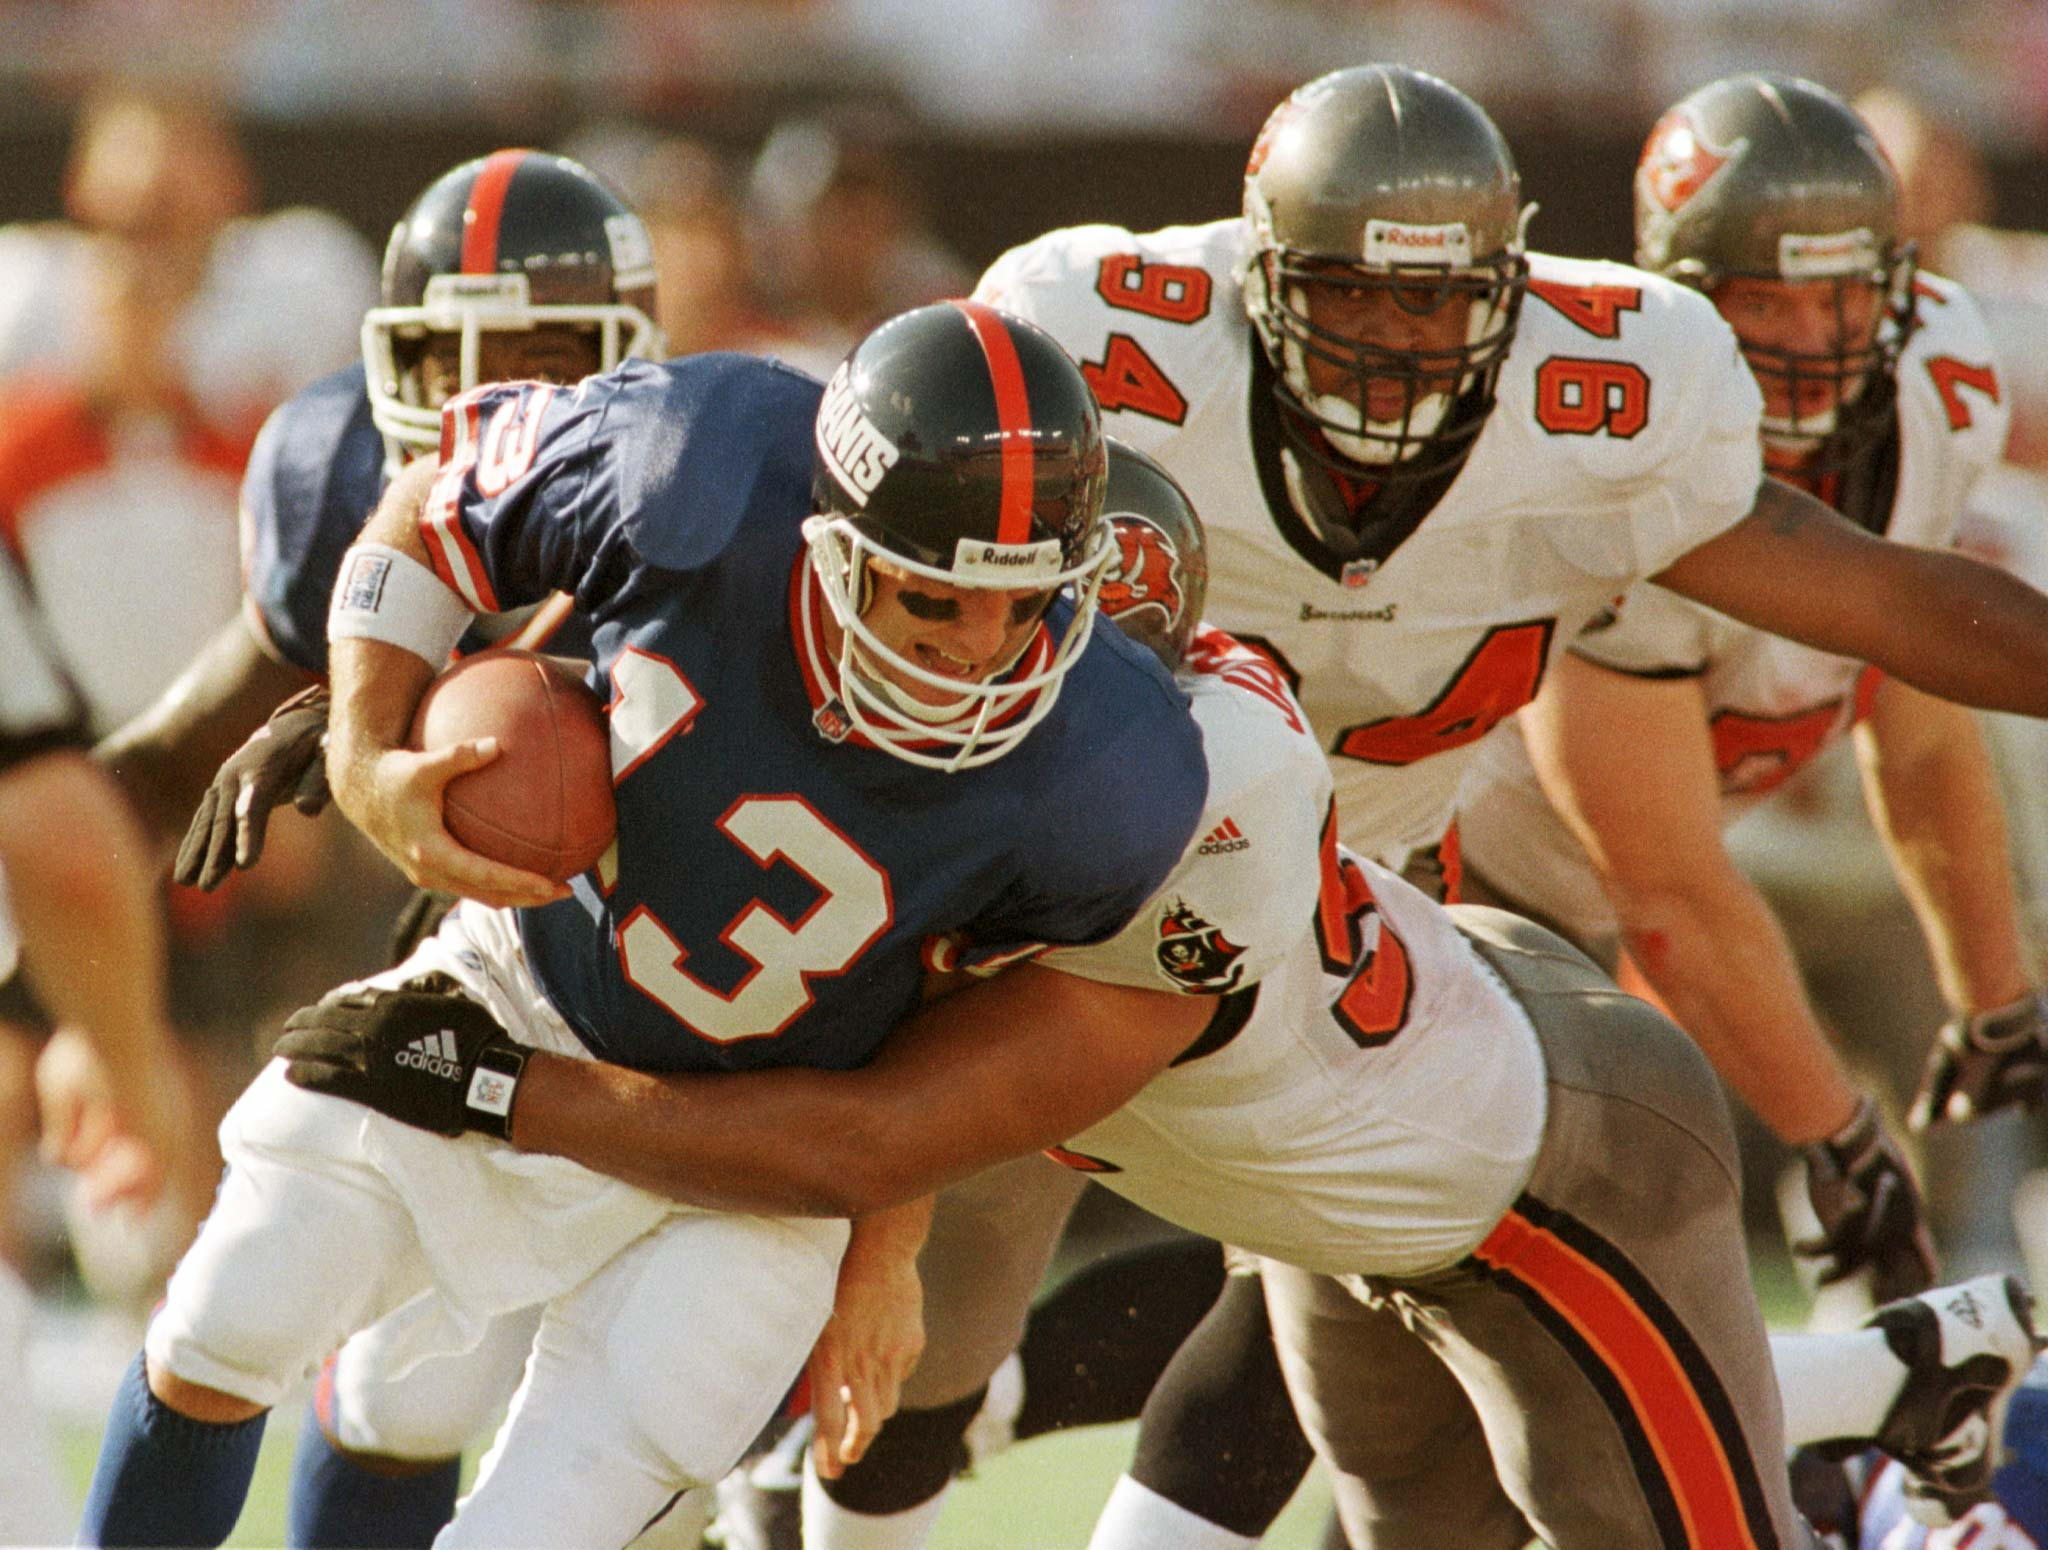 New York Giants quarterback Danny Kanell is sacked for a 12-yard loss in the second quarter by Tampa Bay Buccaneers defender Tyoka Jackson October 4. The NFL contest was played in Tampa's new Raymond James Stadium. Above right is Bucs defender Steve White.